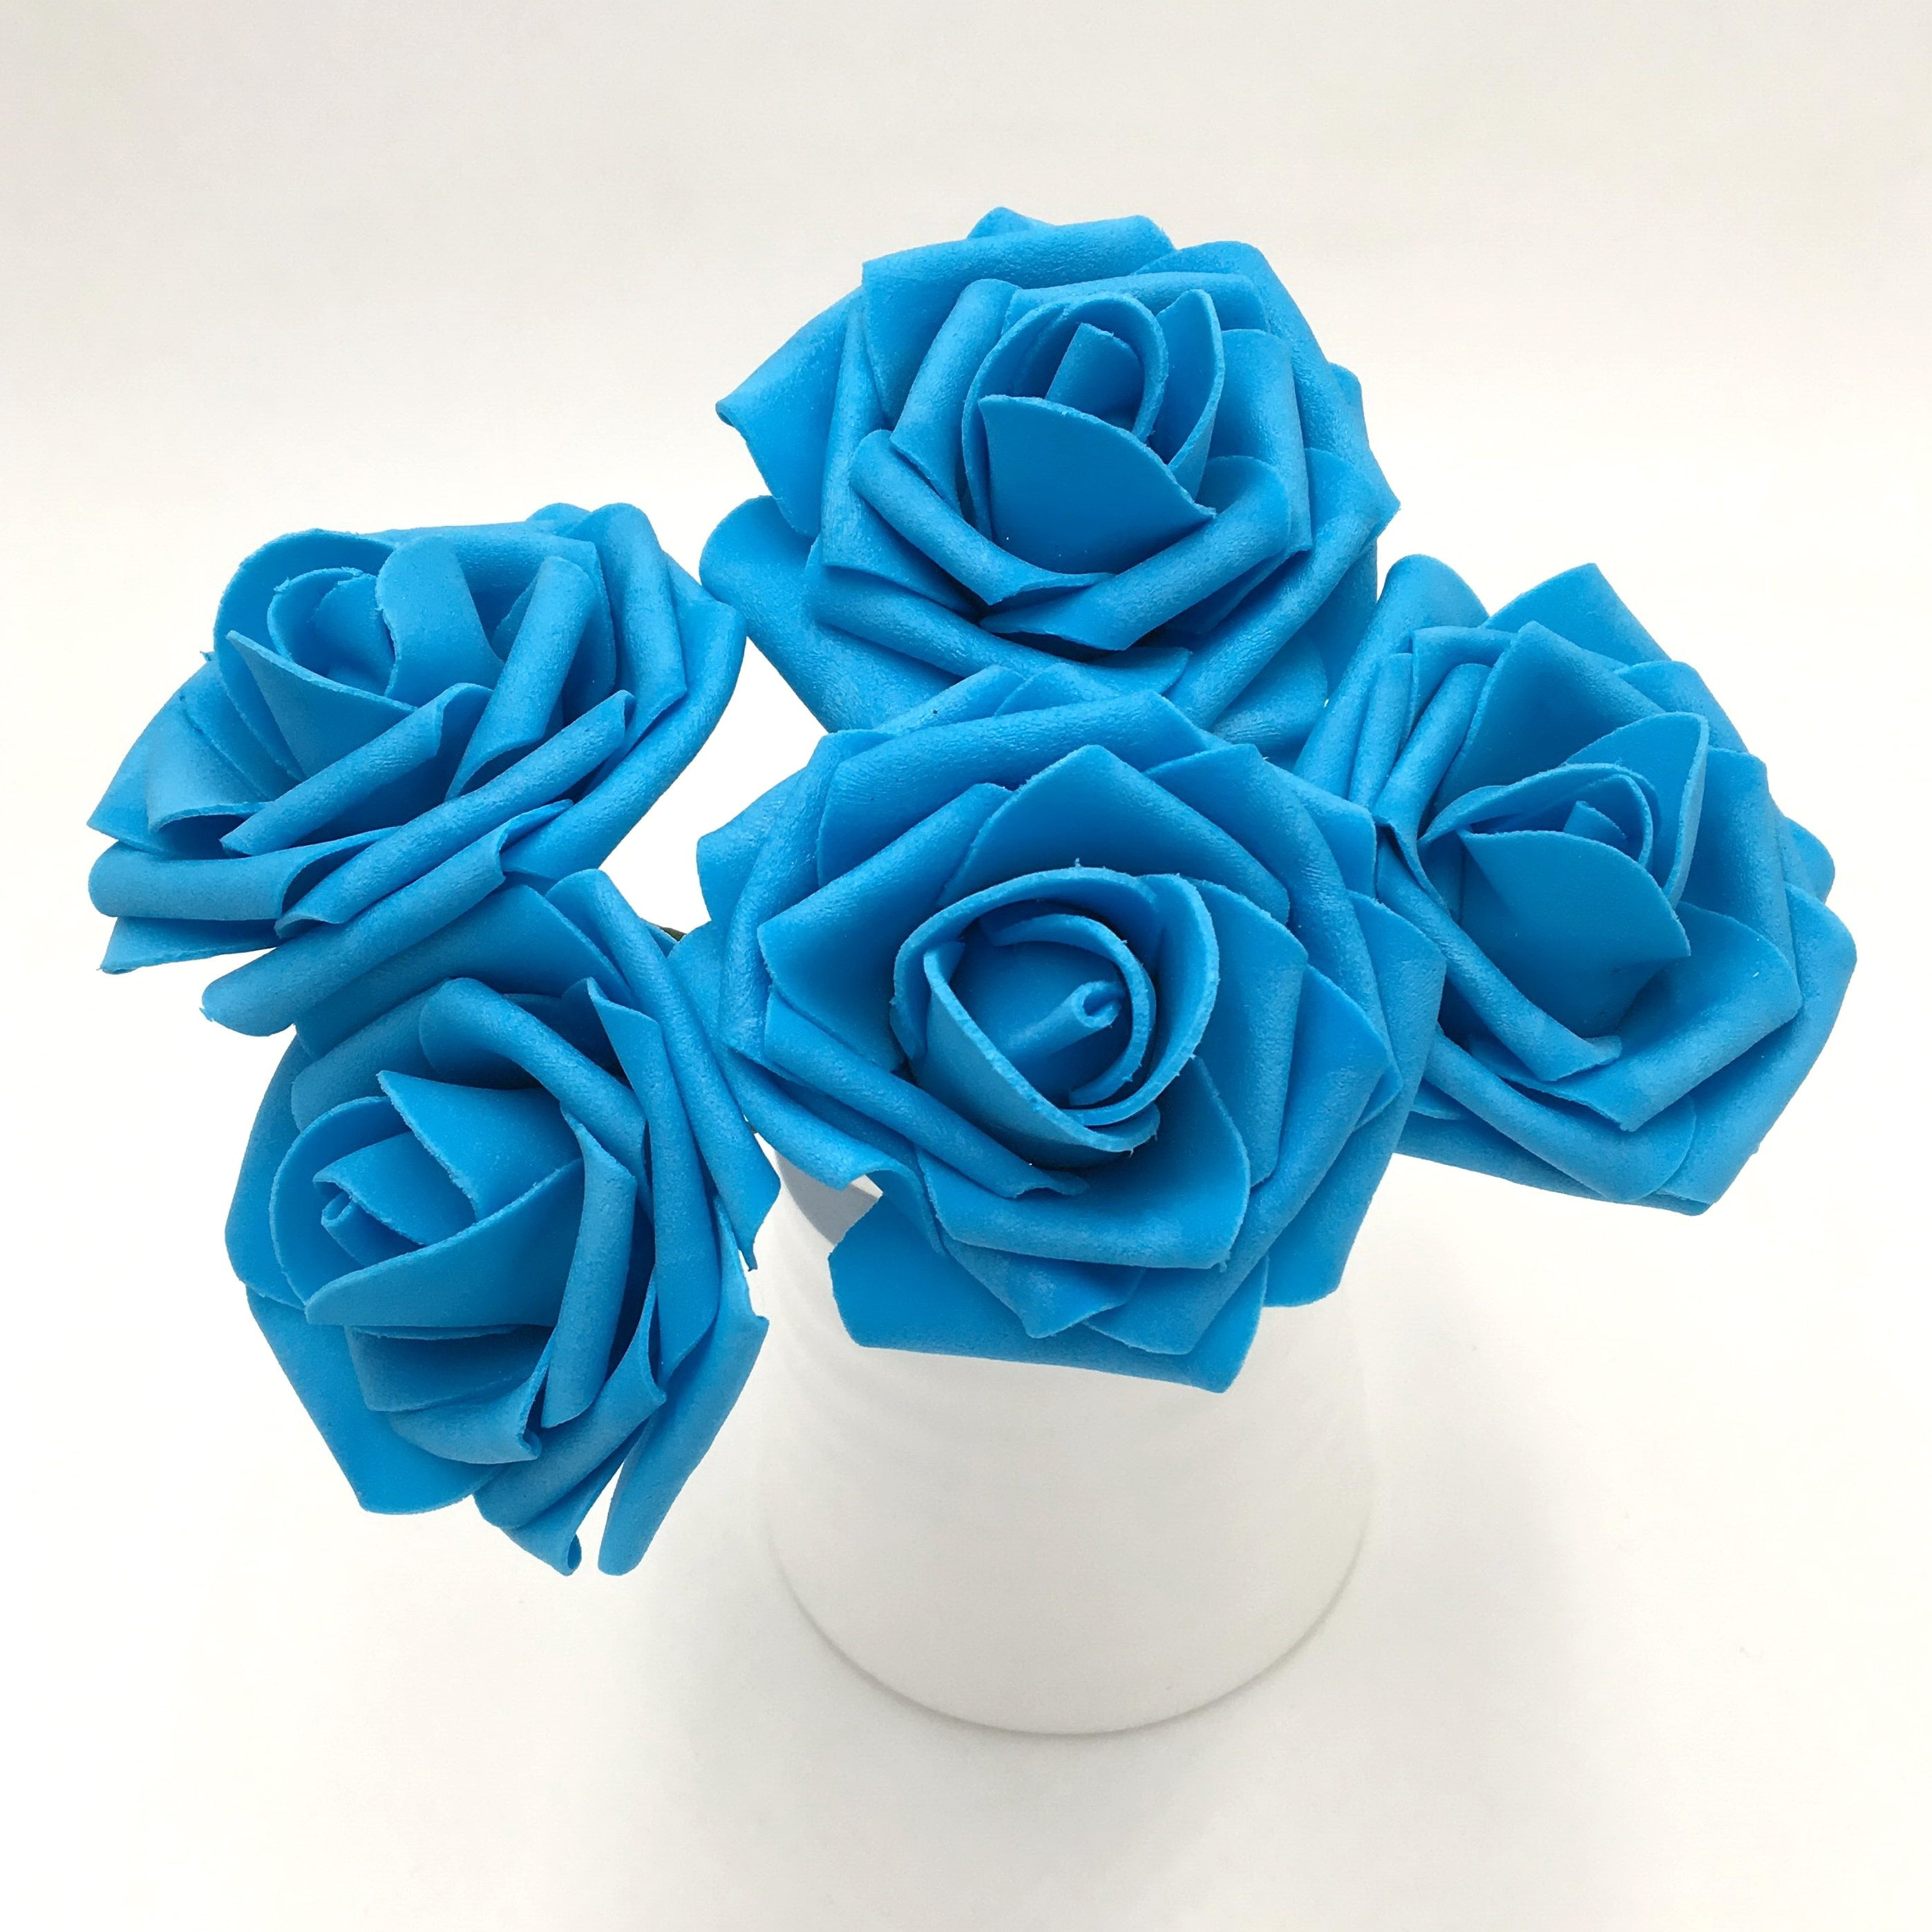 Turquoise Blue Roses Artificial Wedding Flowers 8cm Fake Roses Etsy